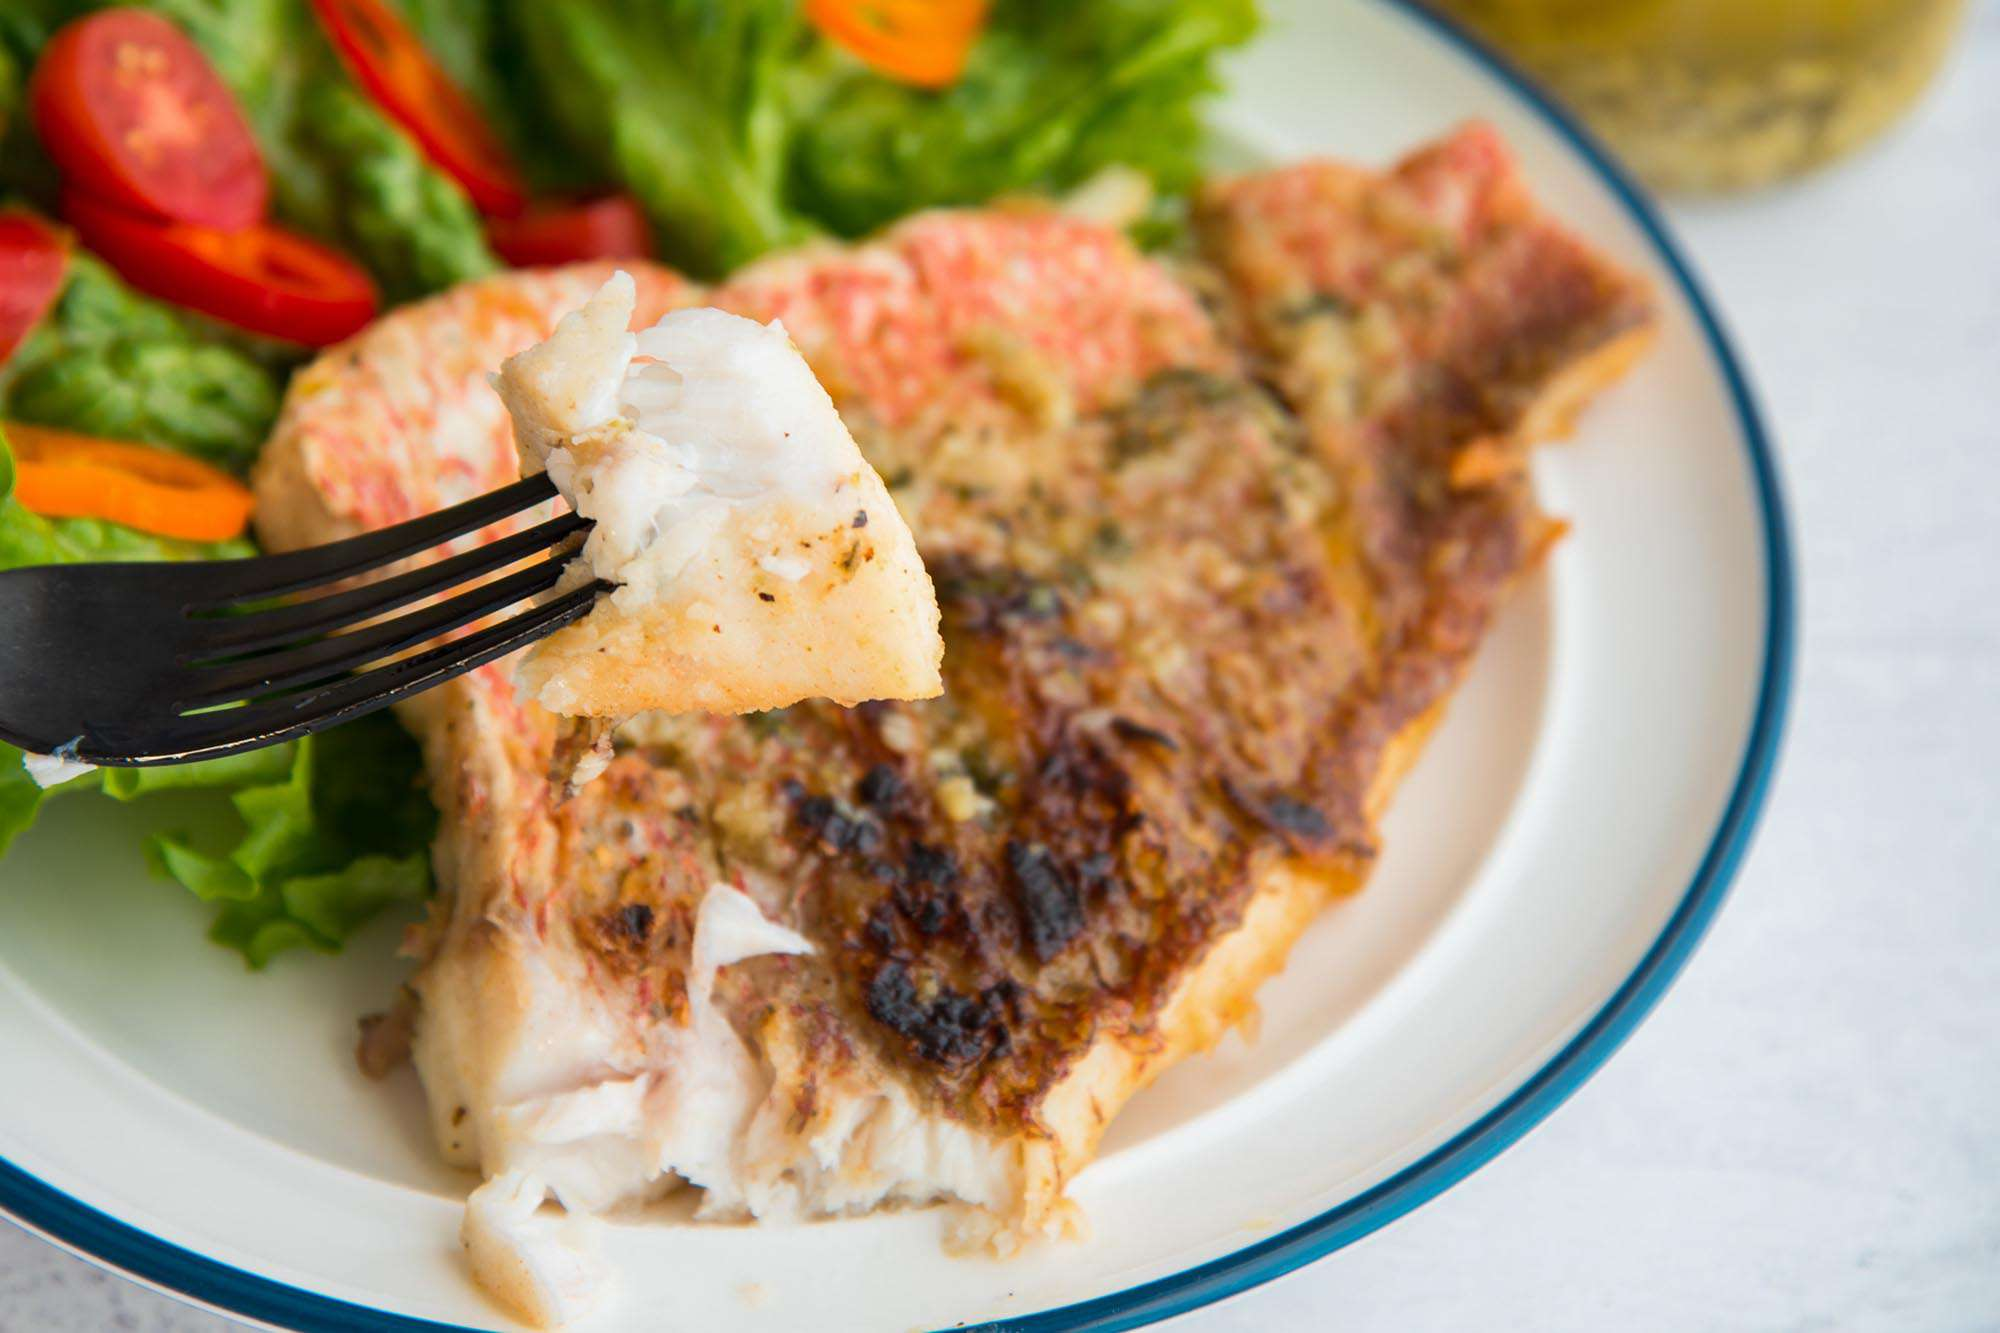 Homemade red snapper is on a white plate with a blue strip around it. A fork is holding a piece of the fillet and a green salad with red and orange peppers is on the plate behind the lenten fish with garlic sauce.